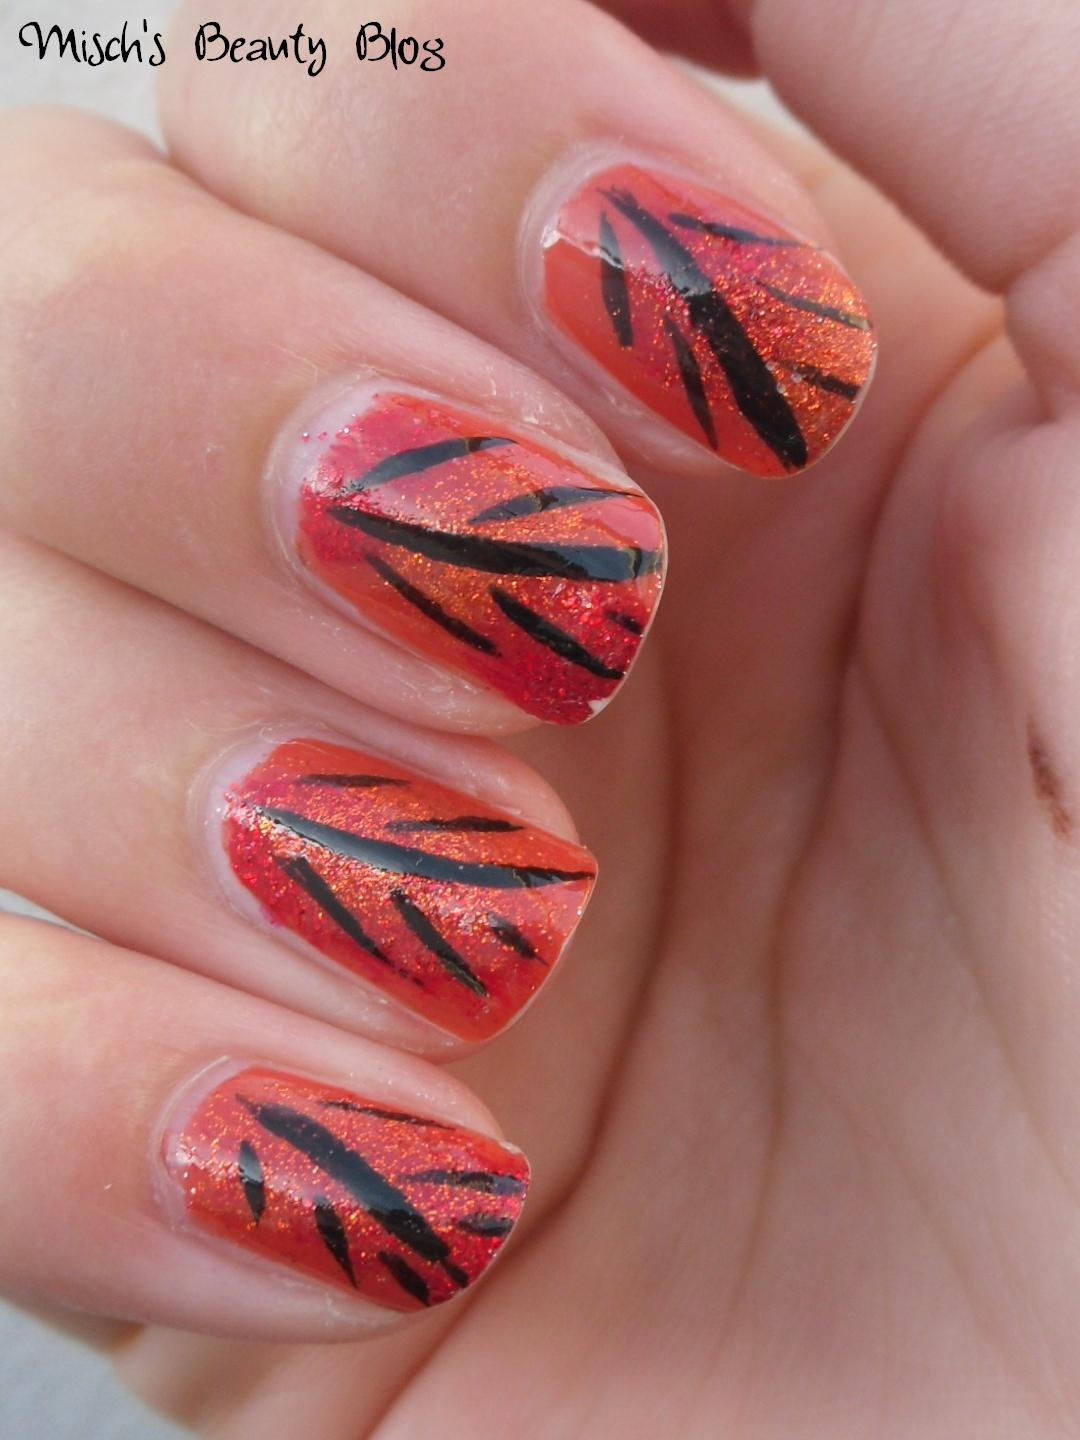 Misch's Beauty Blog: NOTD September 29th: Fall Leaf Nail Art